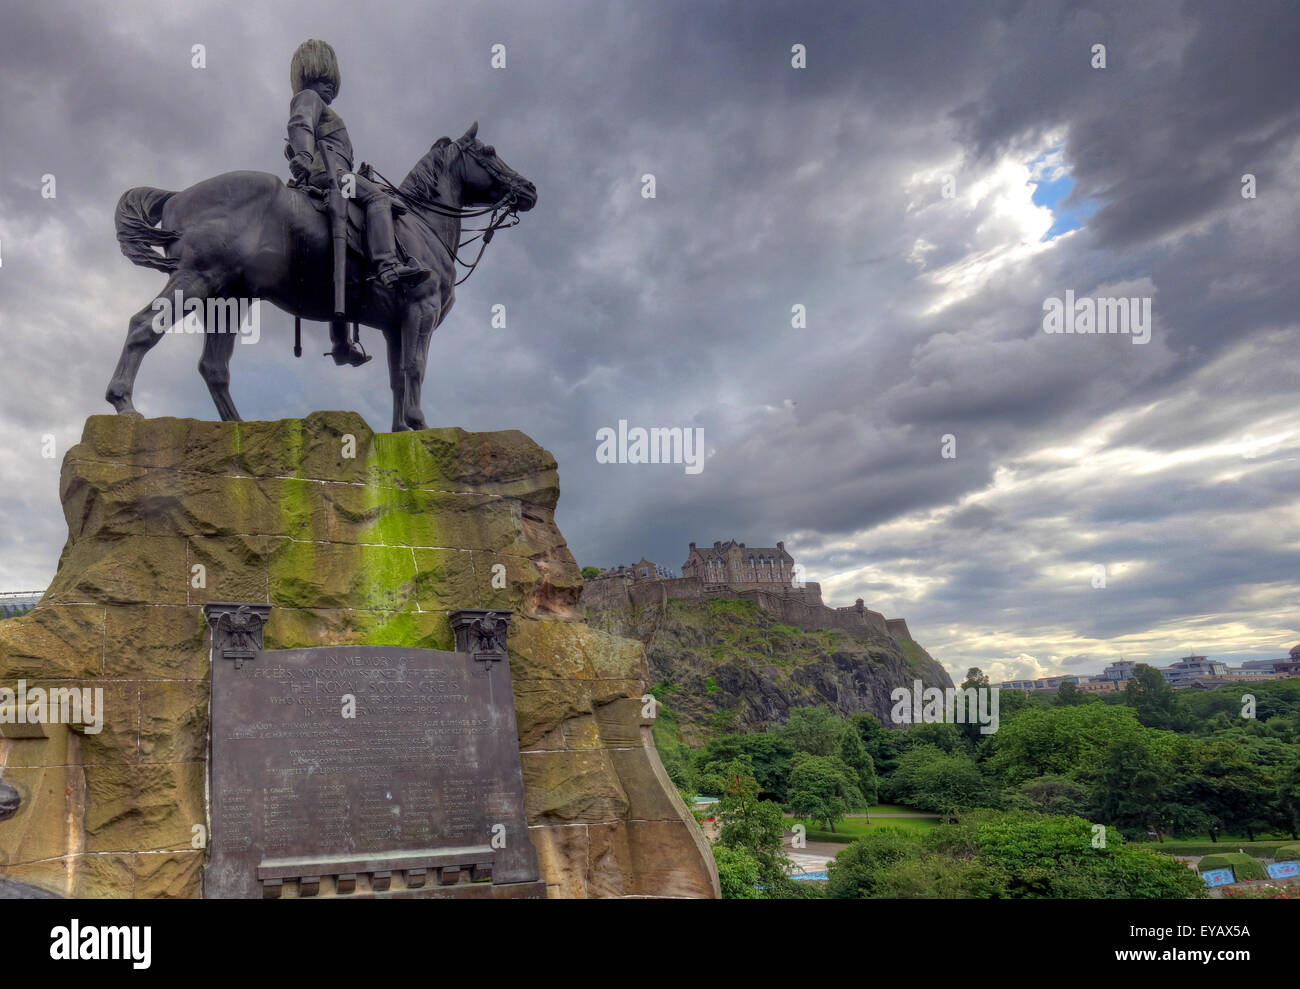 Statue/Plaque in memory of the Royal Scots Greys, Princes St, Edinburgh, Scotland, UK - Stock Image